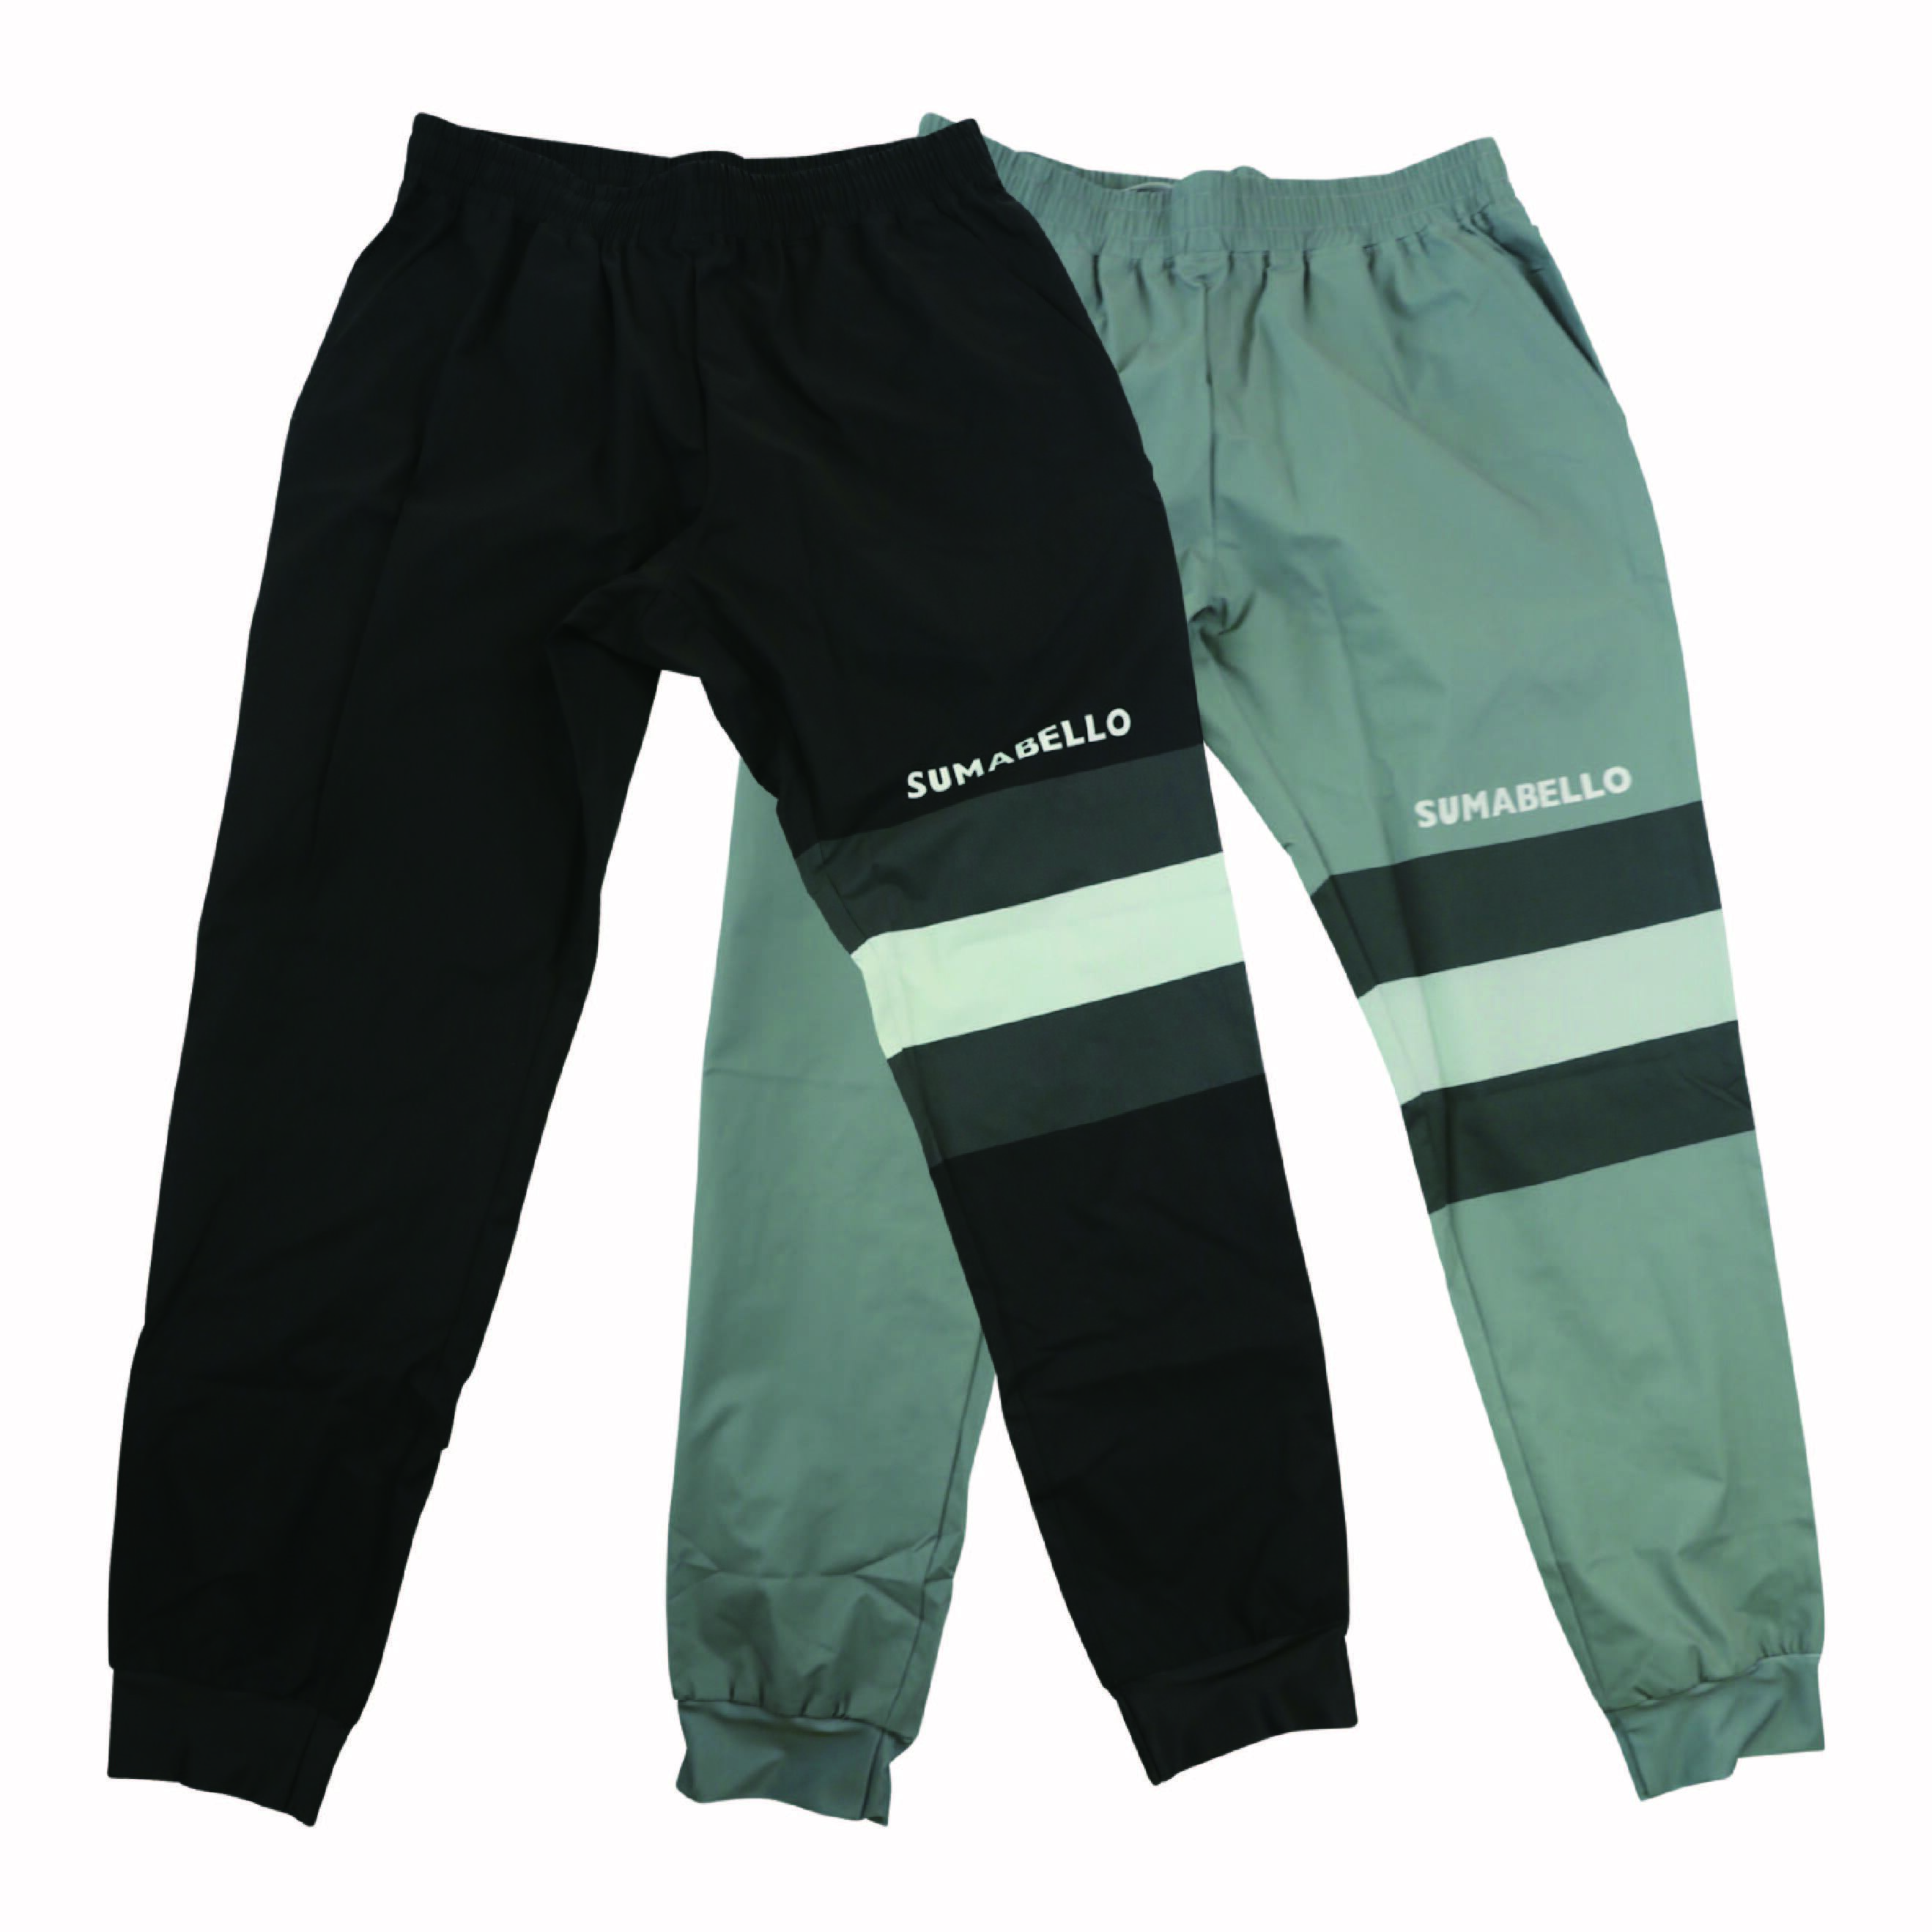 WINDBREAK PISTE PANTS(全2カラー)